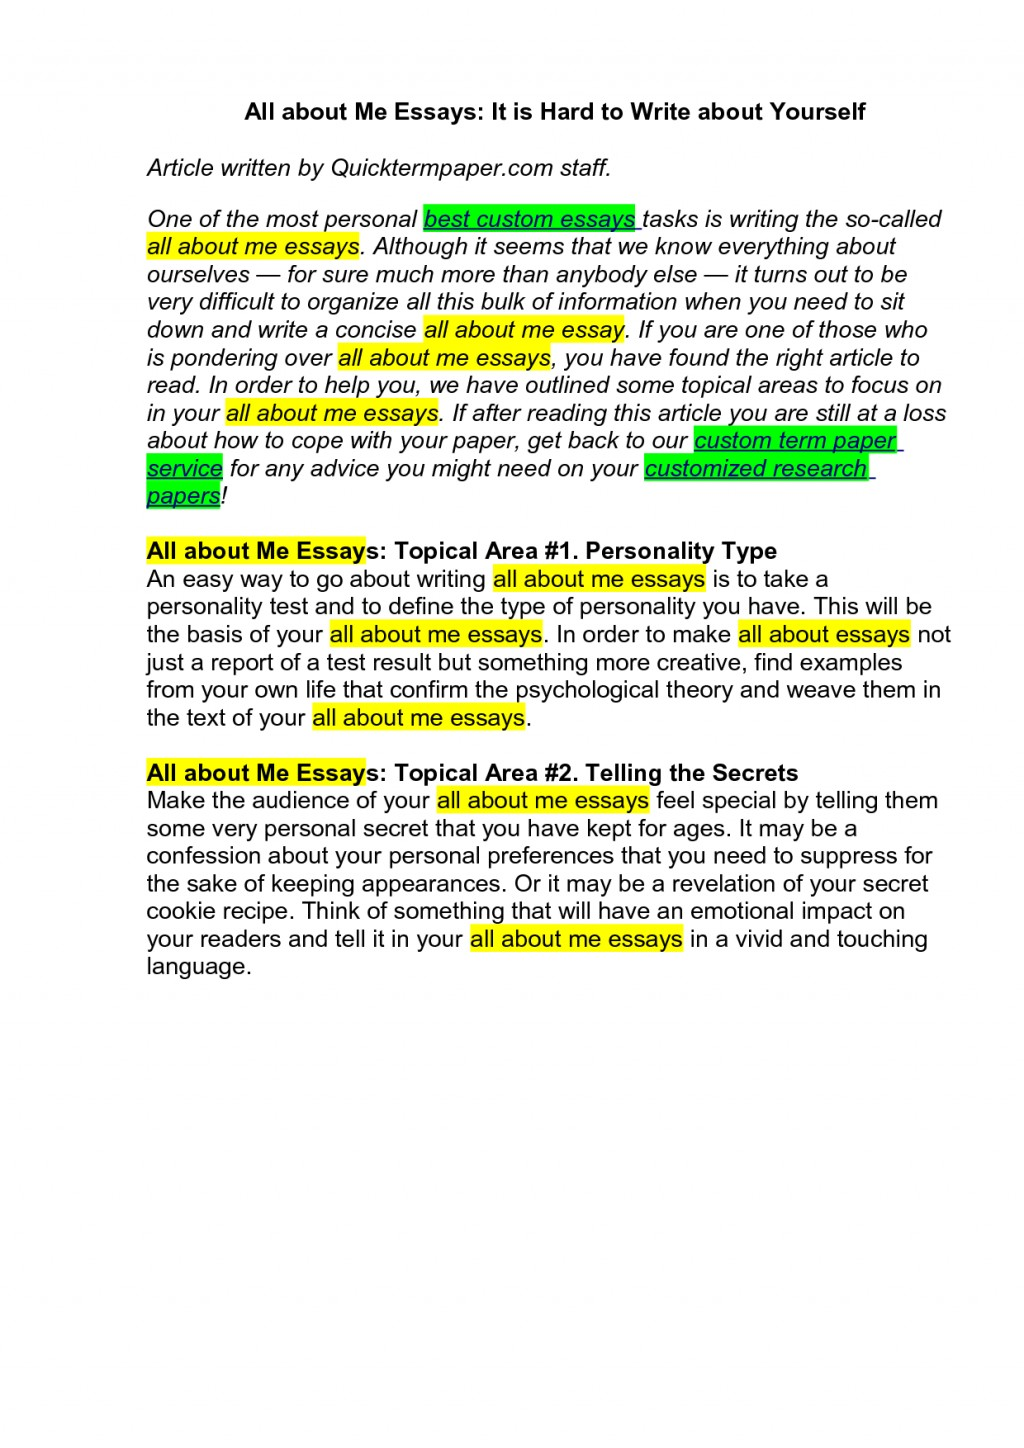 021 Essay Example How To Start An Amazing With A Hook Do U About Book Autobiography Yourself Large